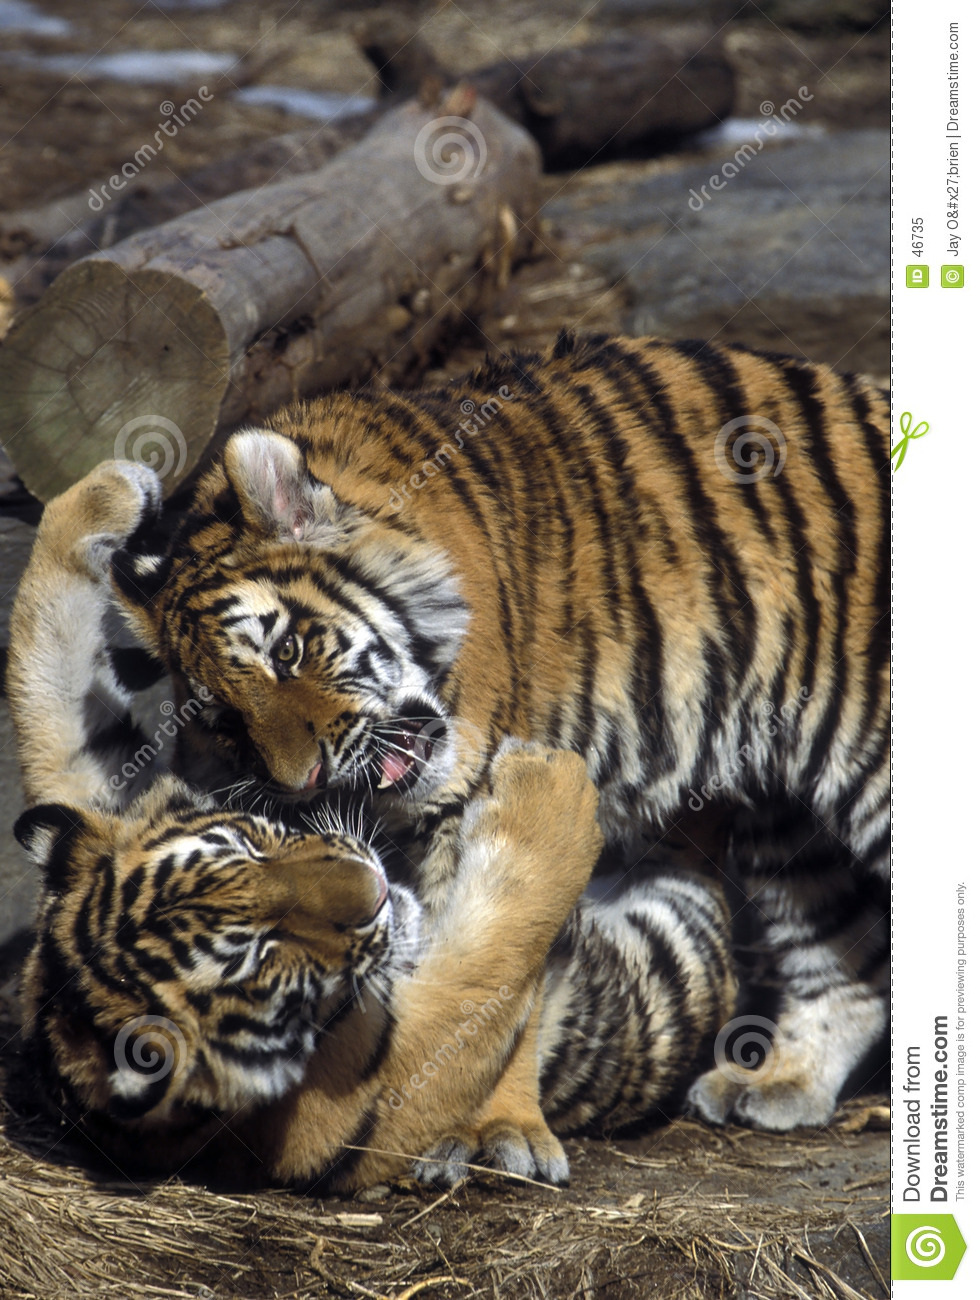 Tiger Cubs Playing Royalty Free Stock Photo - Image: 46735 Cute Siberian Tiger Cubs